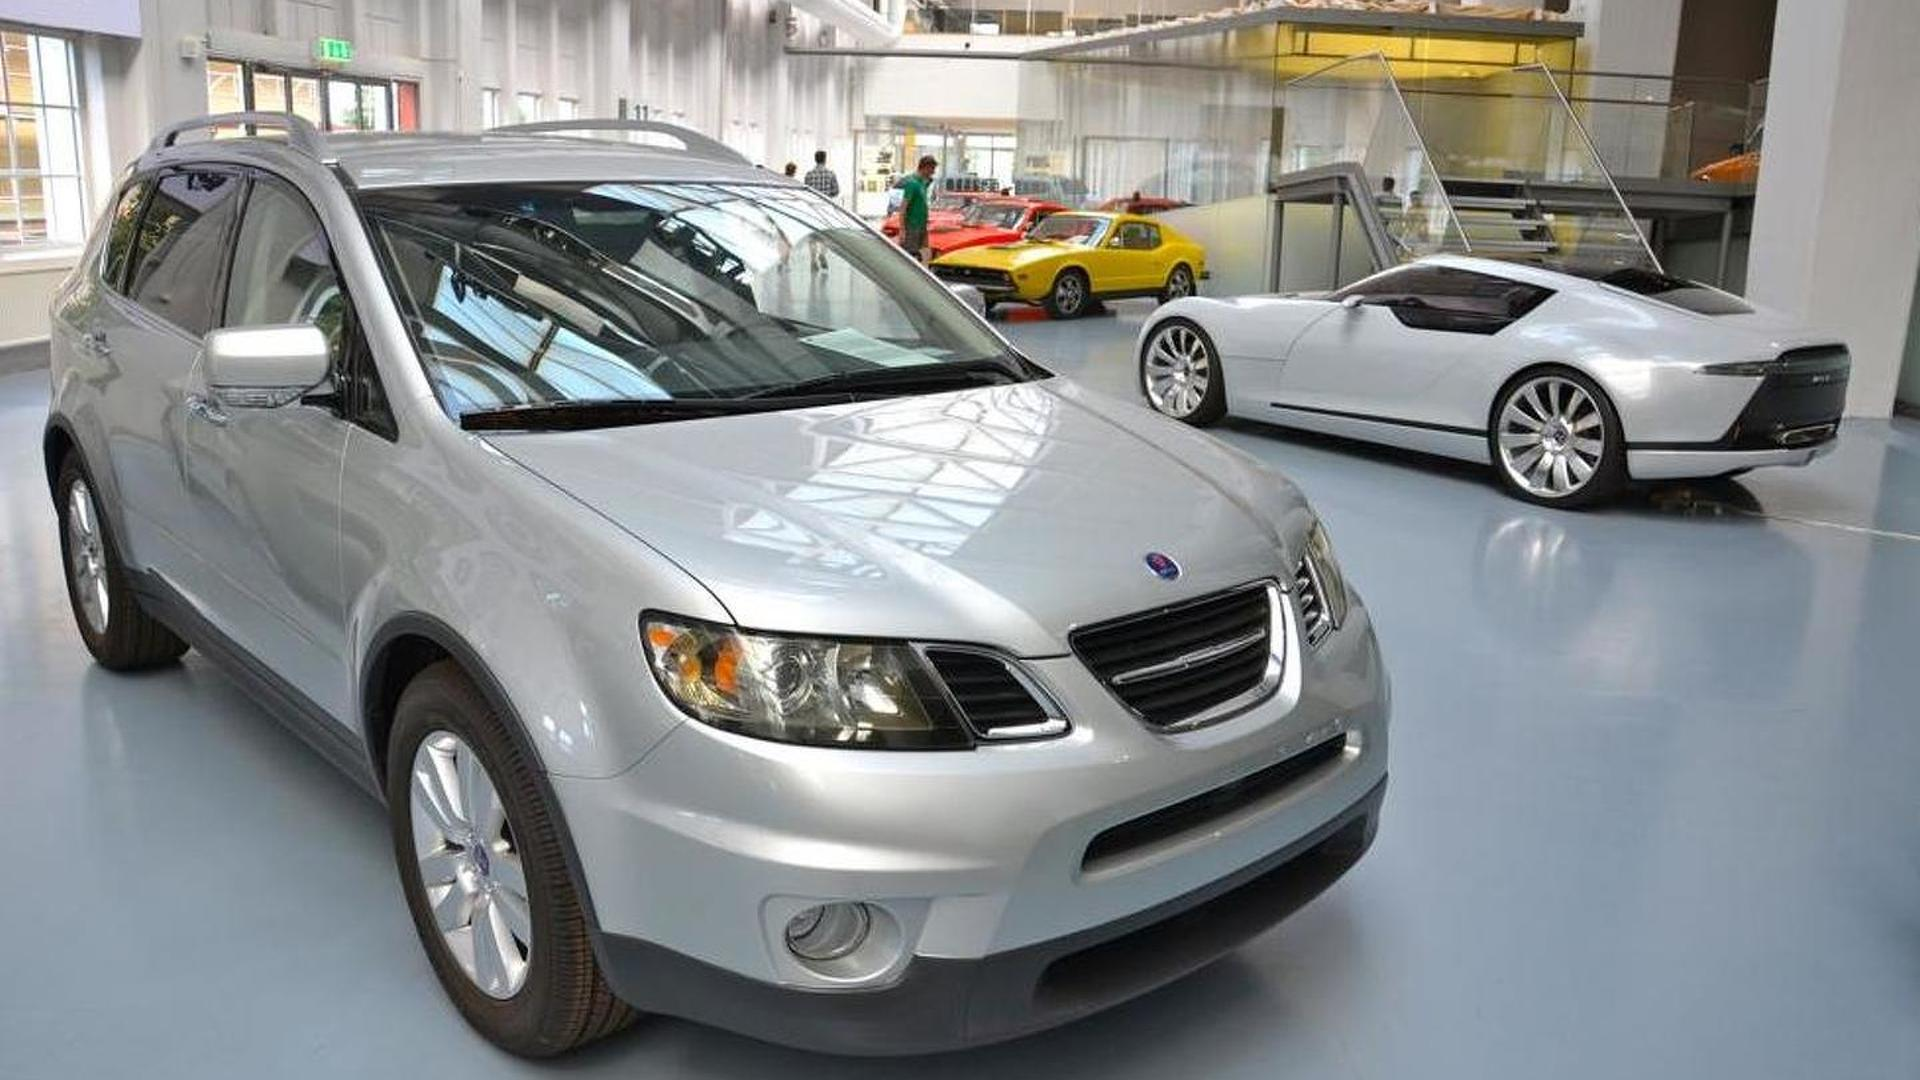 Turkish private equity firm to bid for Saab